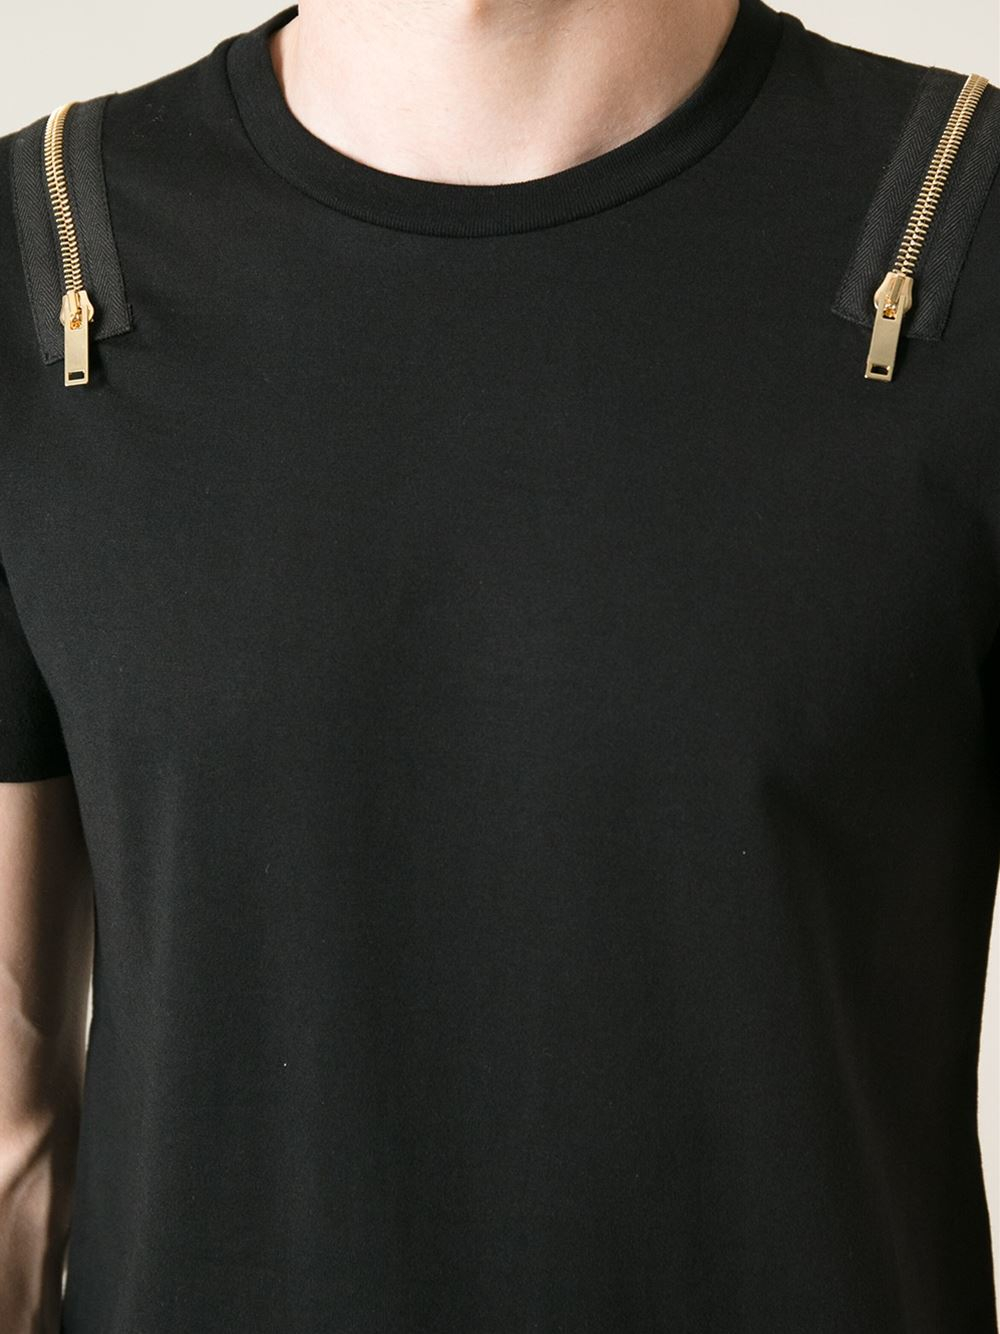 Black t shirt with zipper - Gallery